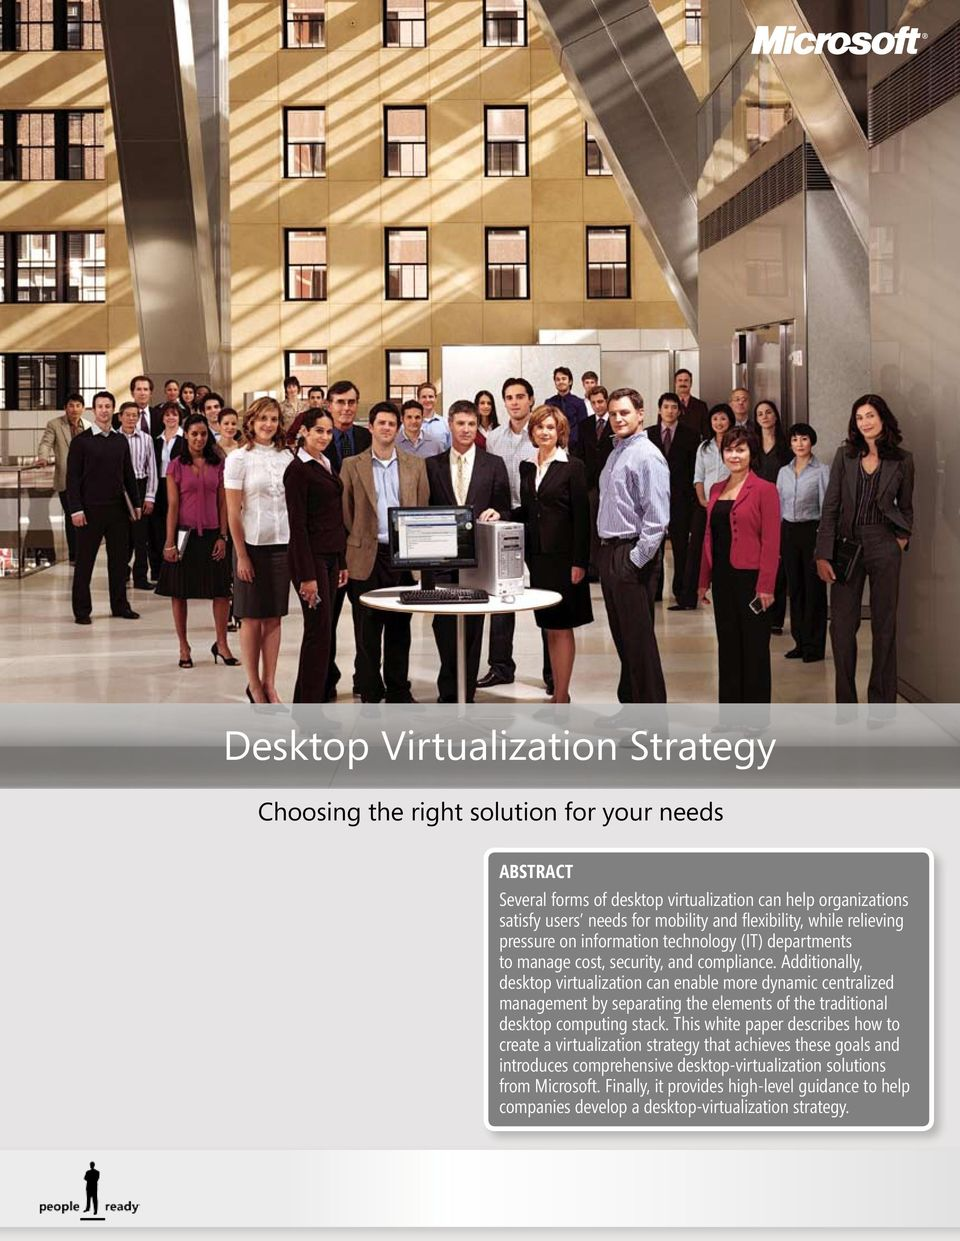 Additionally, desktop virtualization can enable more dynamic centralized management by separating the elements of the traditional desktop computing stack.